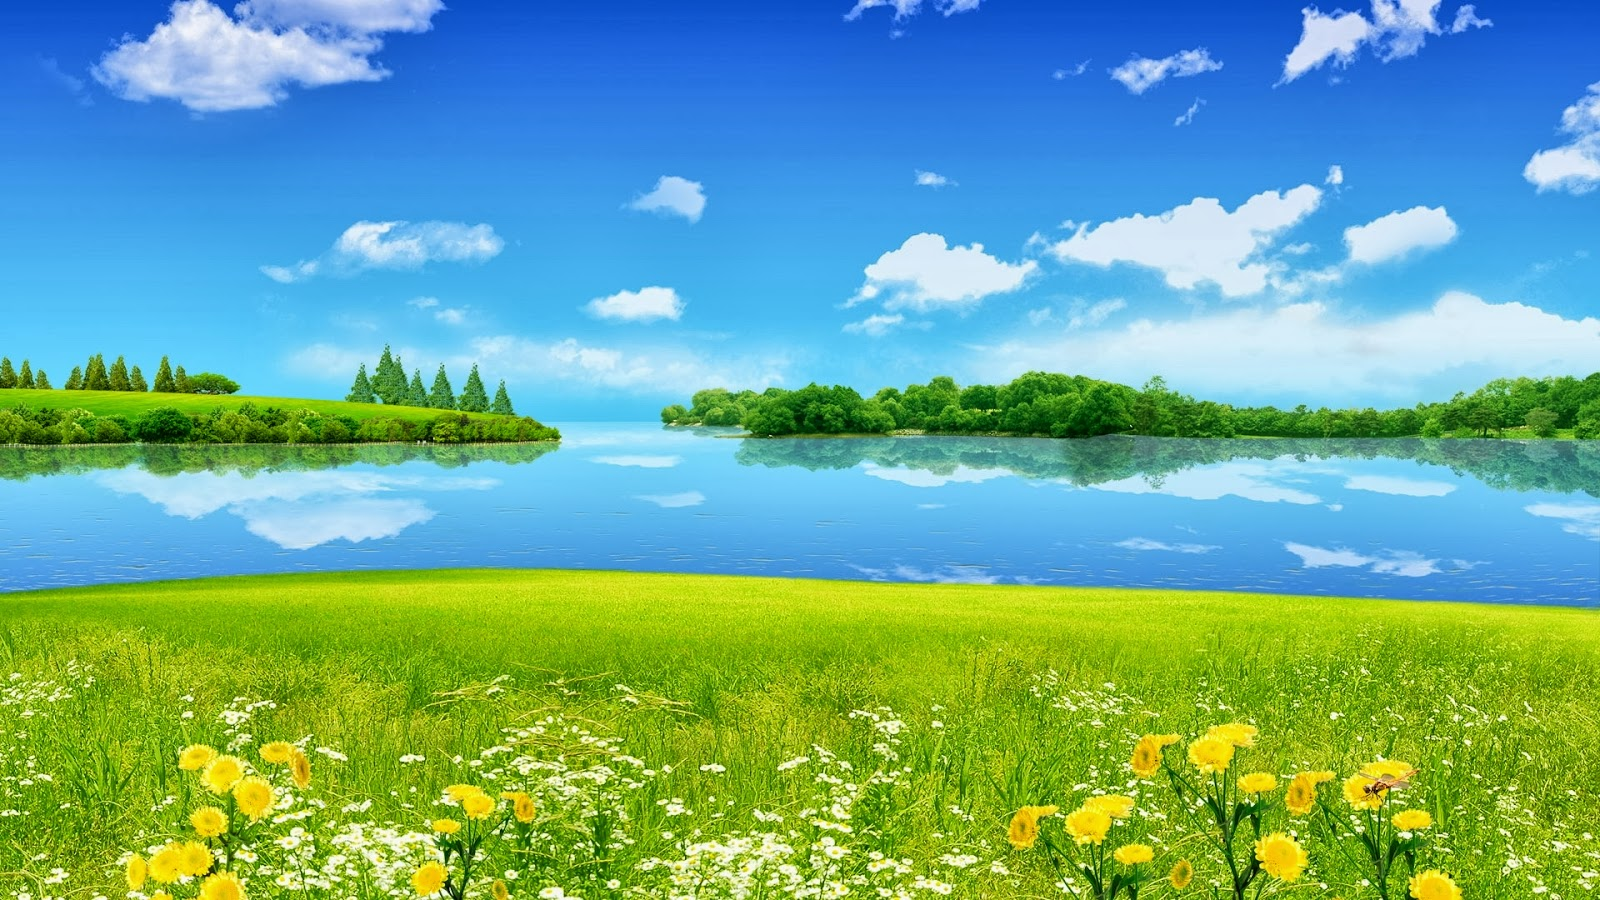 Green Grass Full HD Nature Wallpapers Downloads For Laptop PC 1600x900